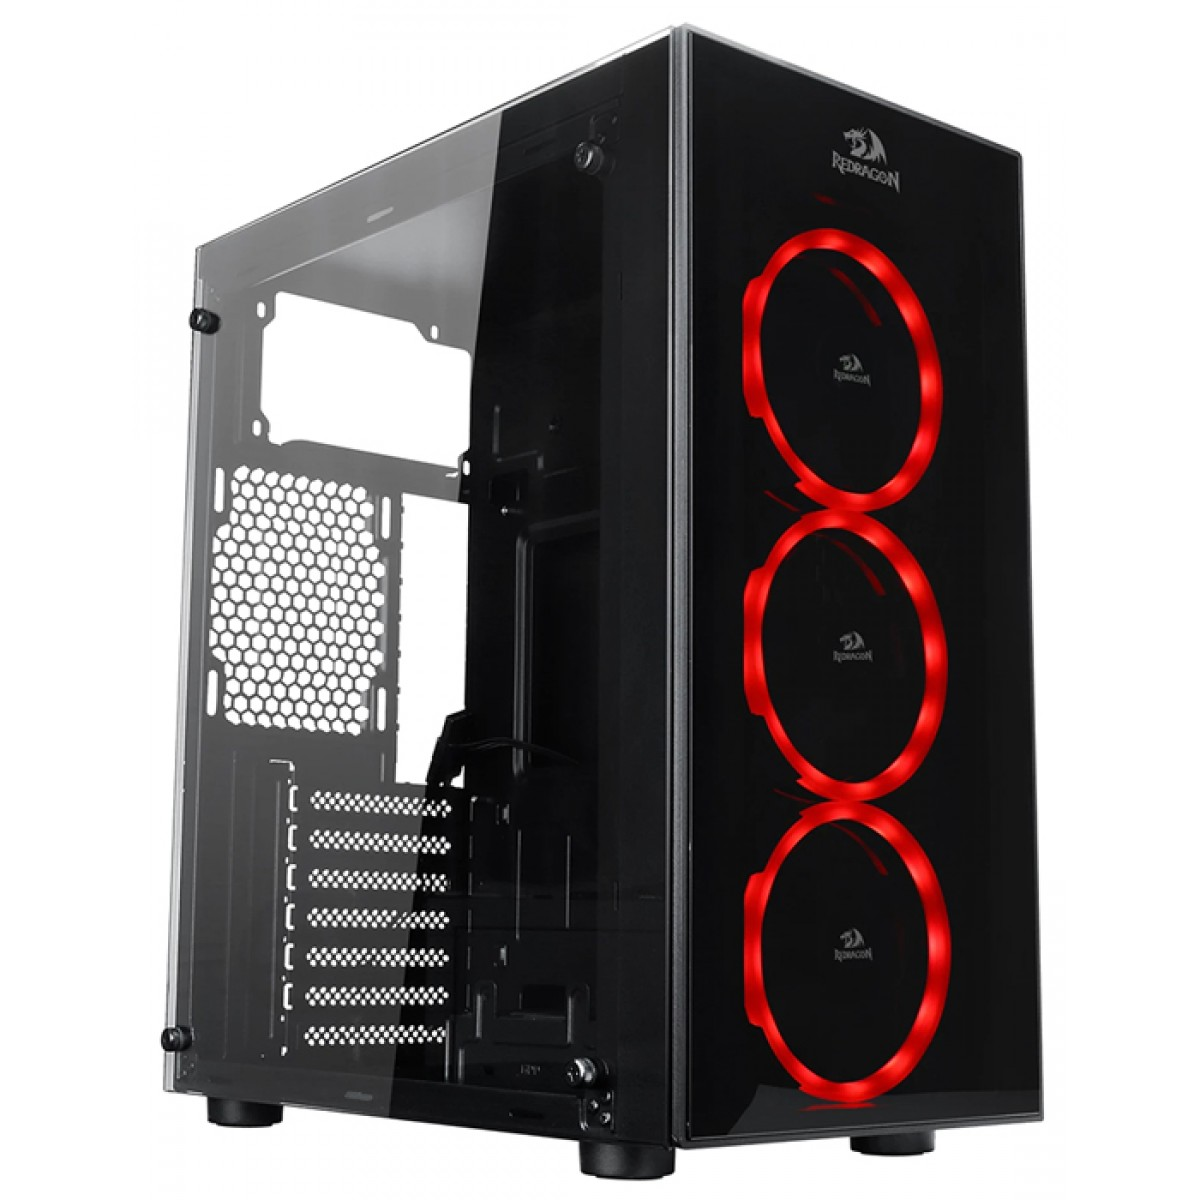 Gabinete Gamer Redragon, Thundercracker, Mid Tower, Vidro Temperado, Black, Sem Fonte, Com 3 Fans RGB